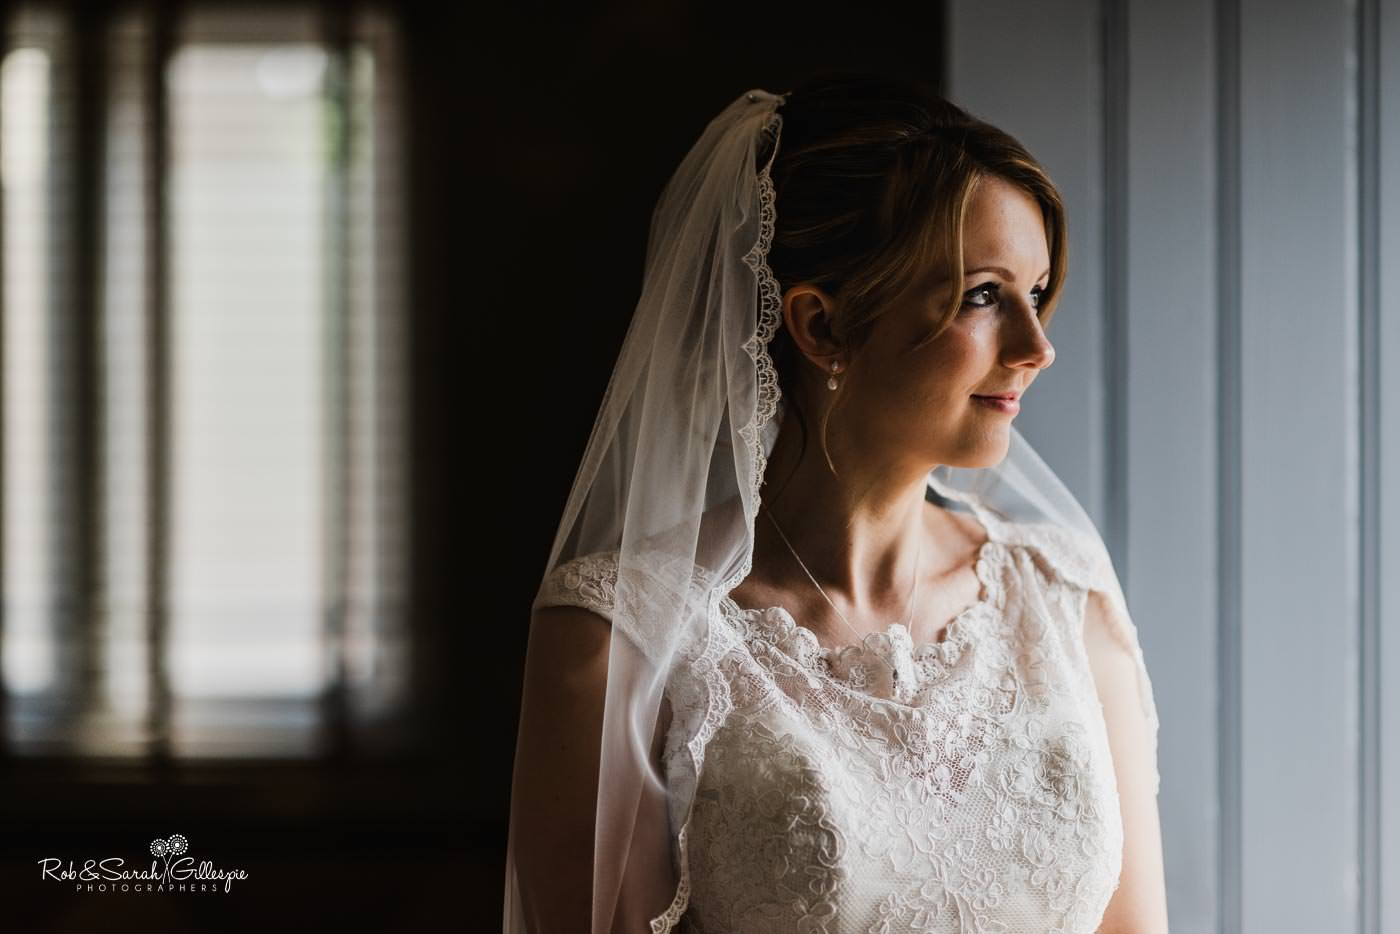 Beautiful wedding photography at Swallows Nest Barn